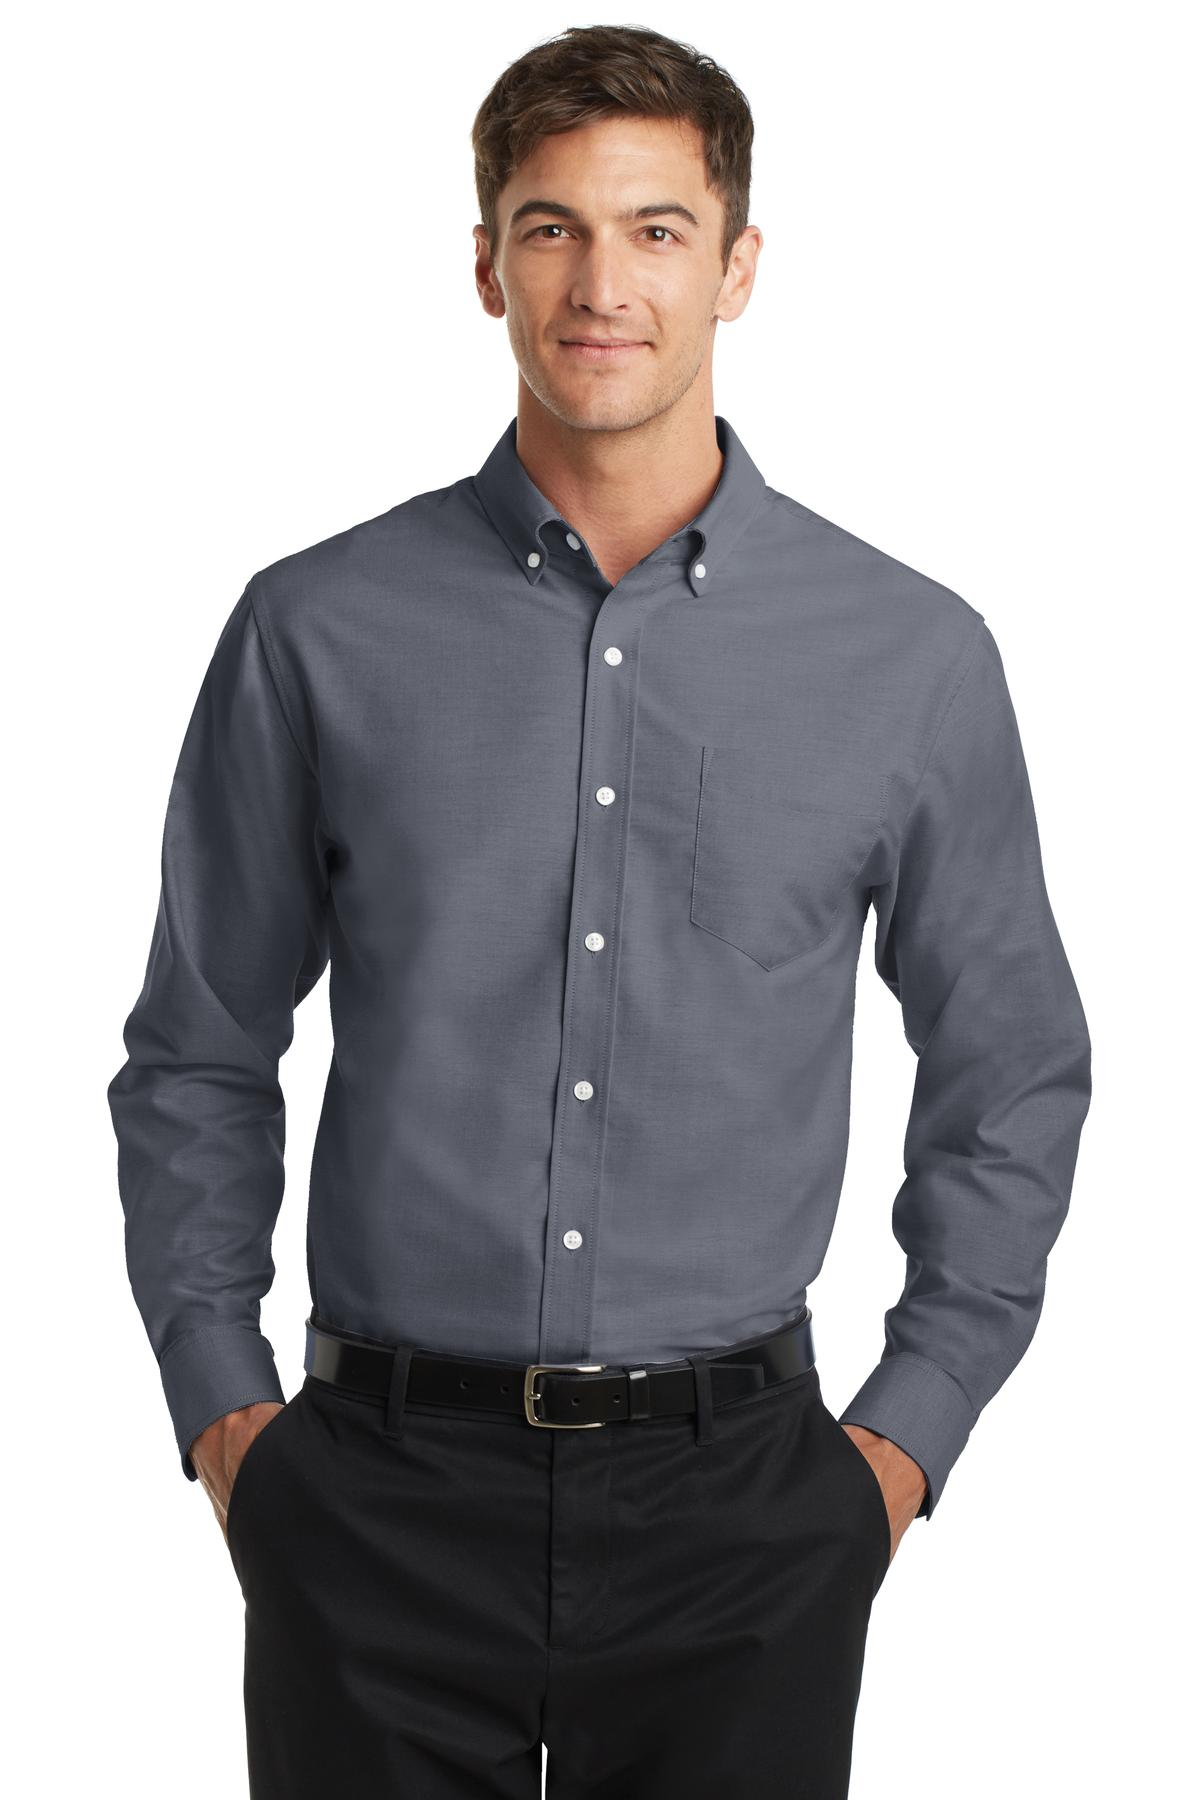 Port Authority® S658 - SuperPro Oxford Shirt